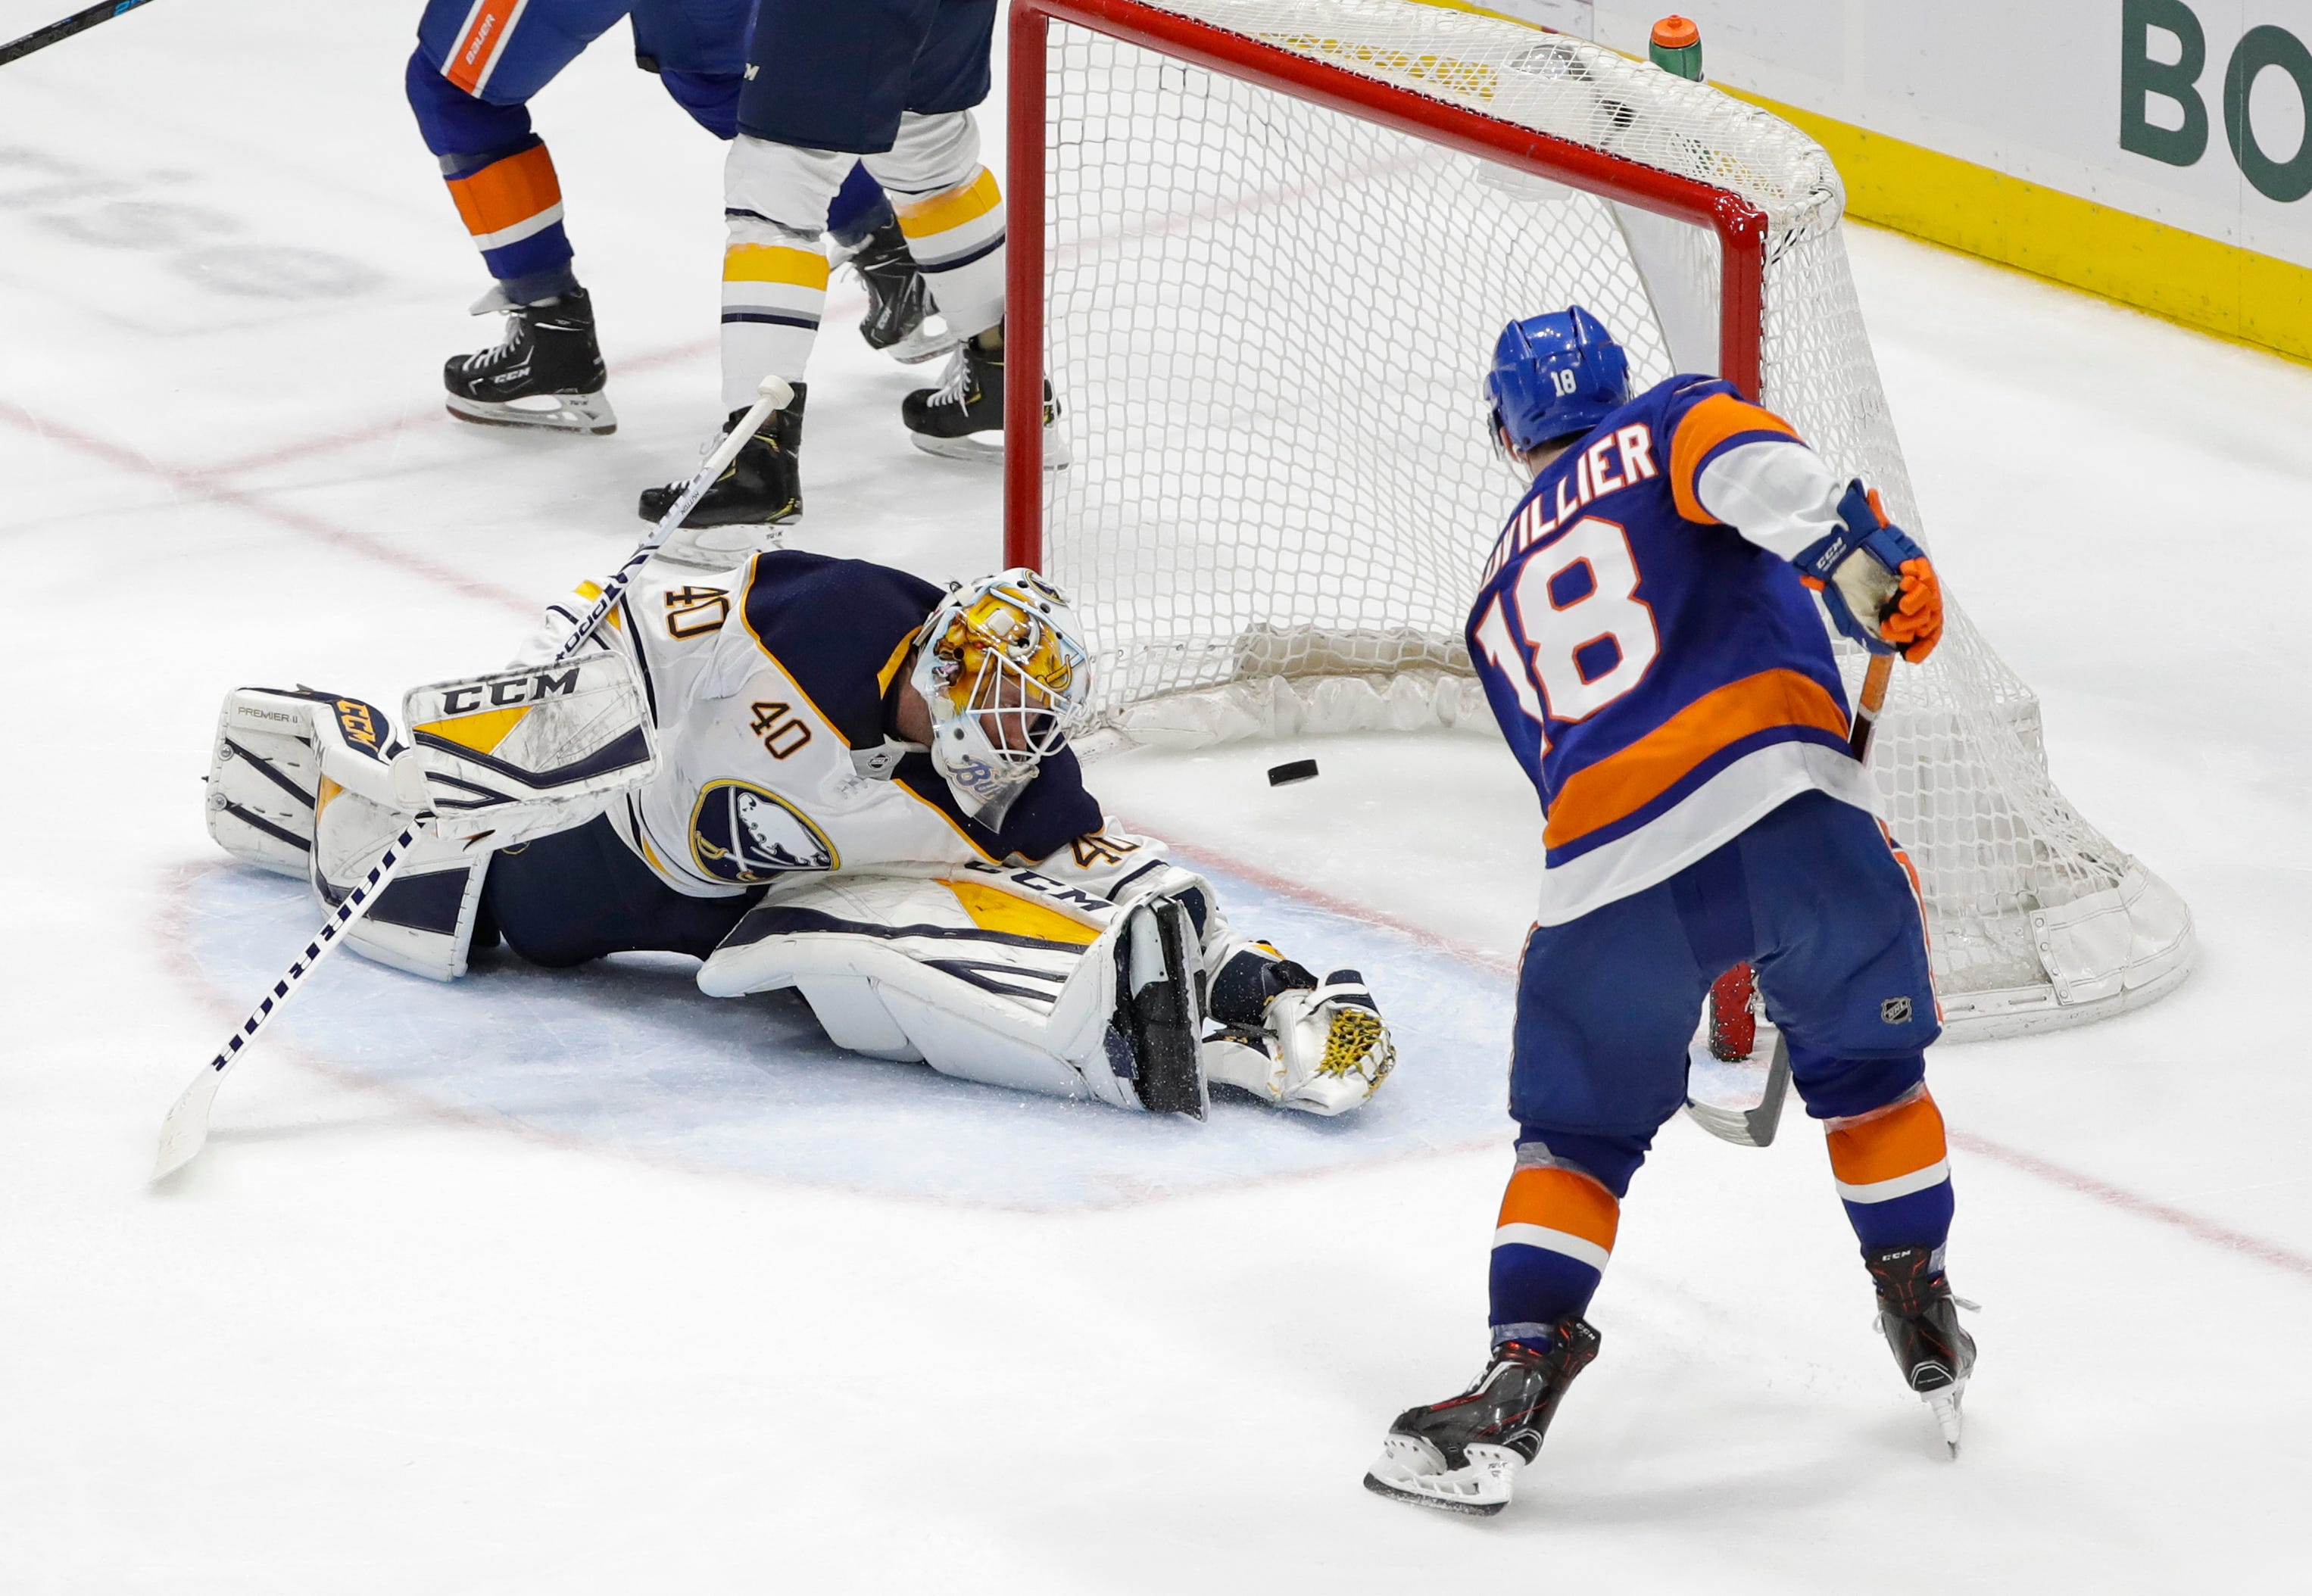 Islanders clinch playoff spot with 5-1 victory over Sabres